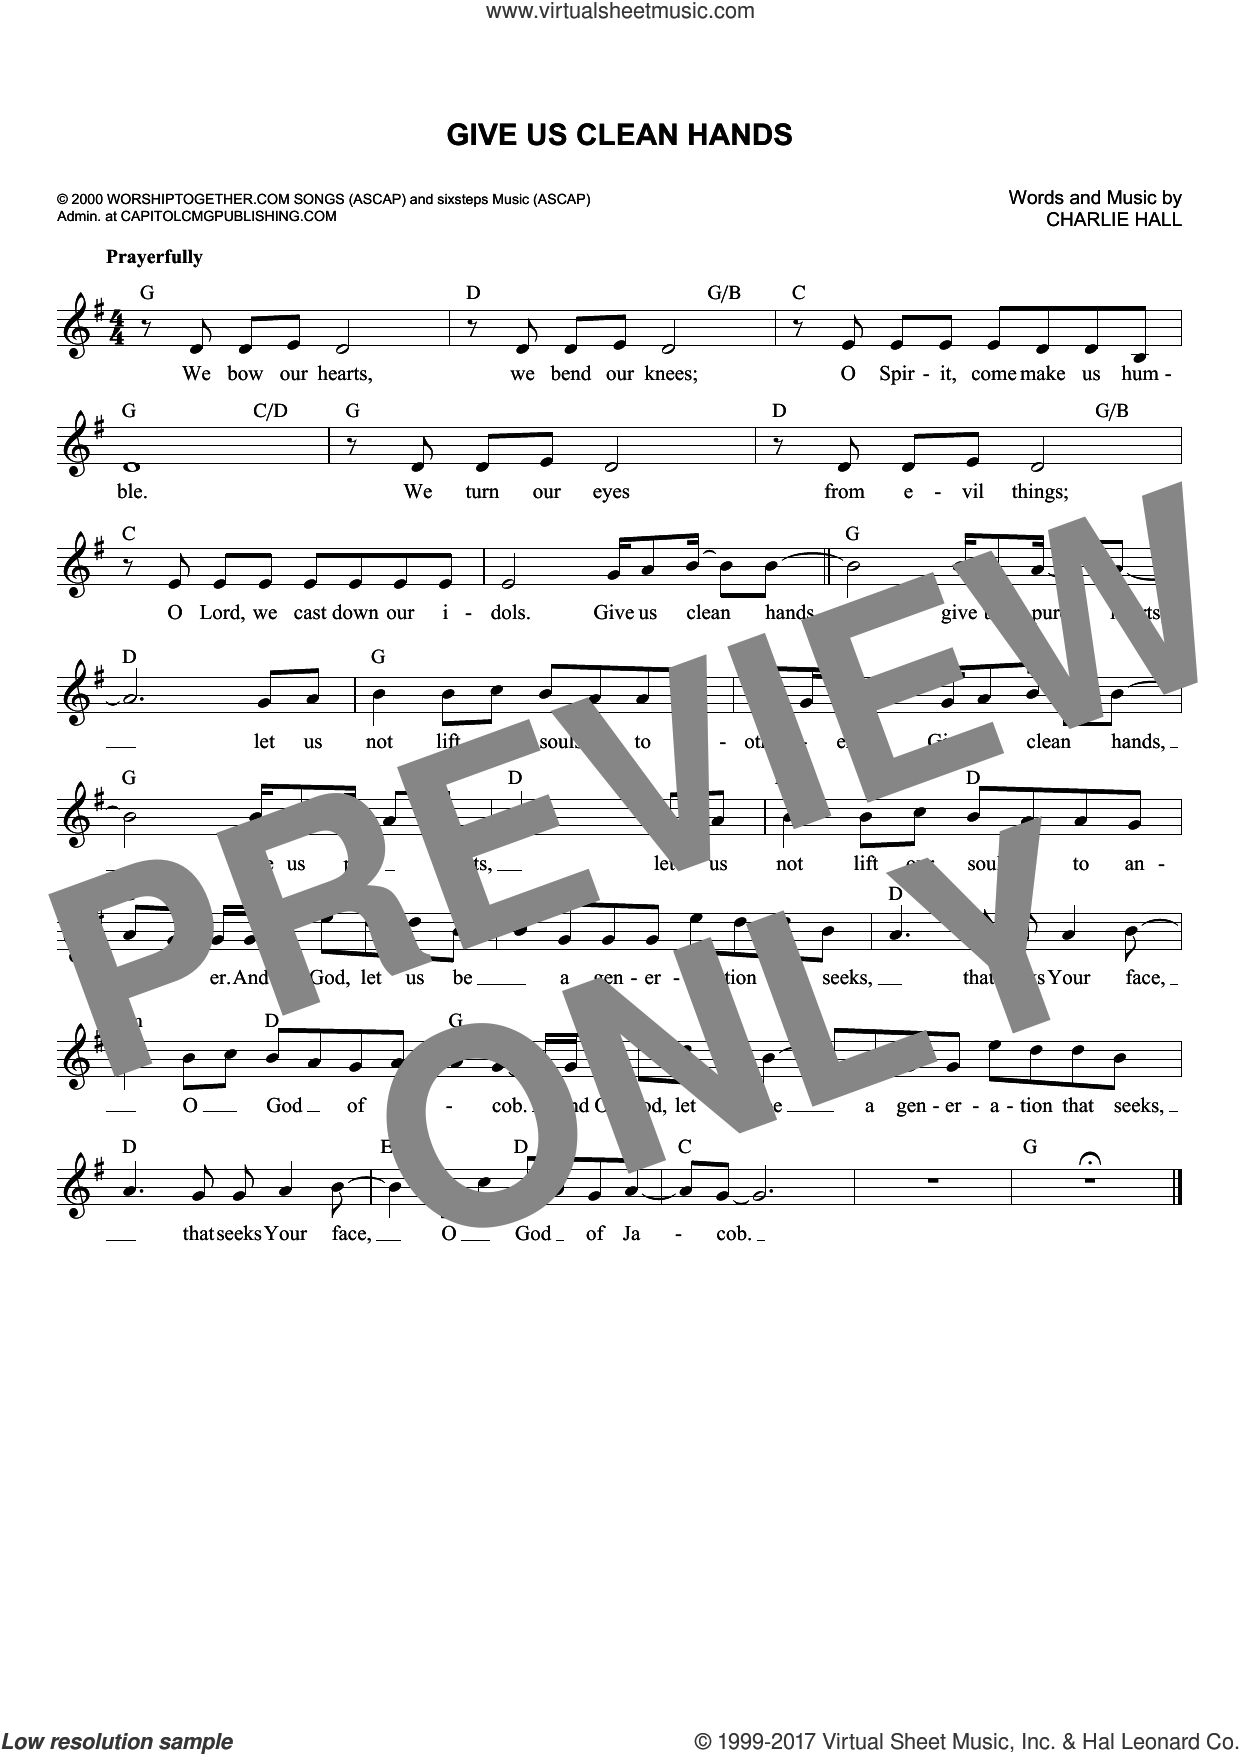 Give Us Clean Hands sheet music for voice and other instruments (fake book) by Charlie Hall, Chris Tomlin and Passion, intermediate skill level